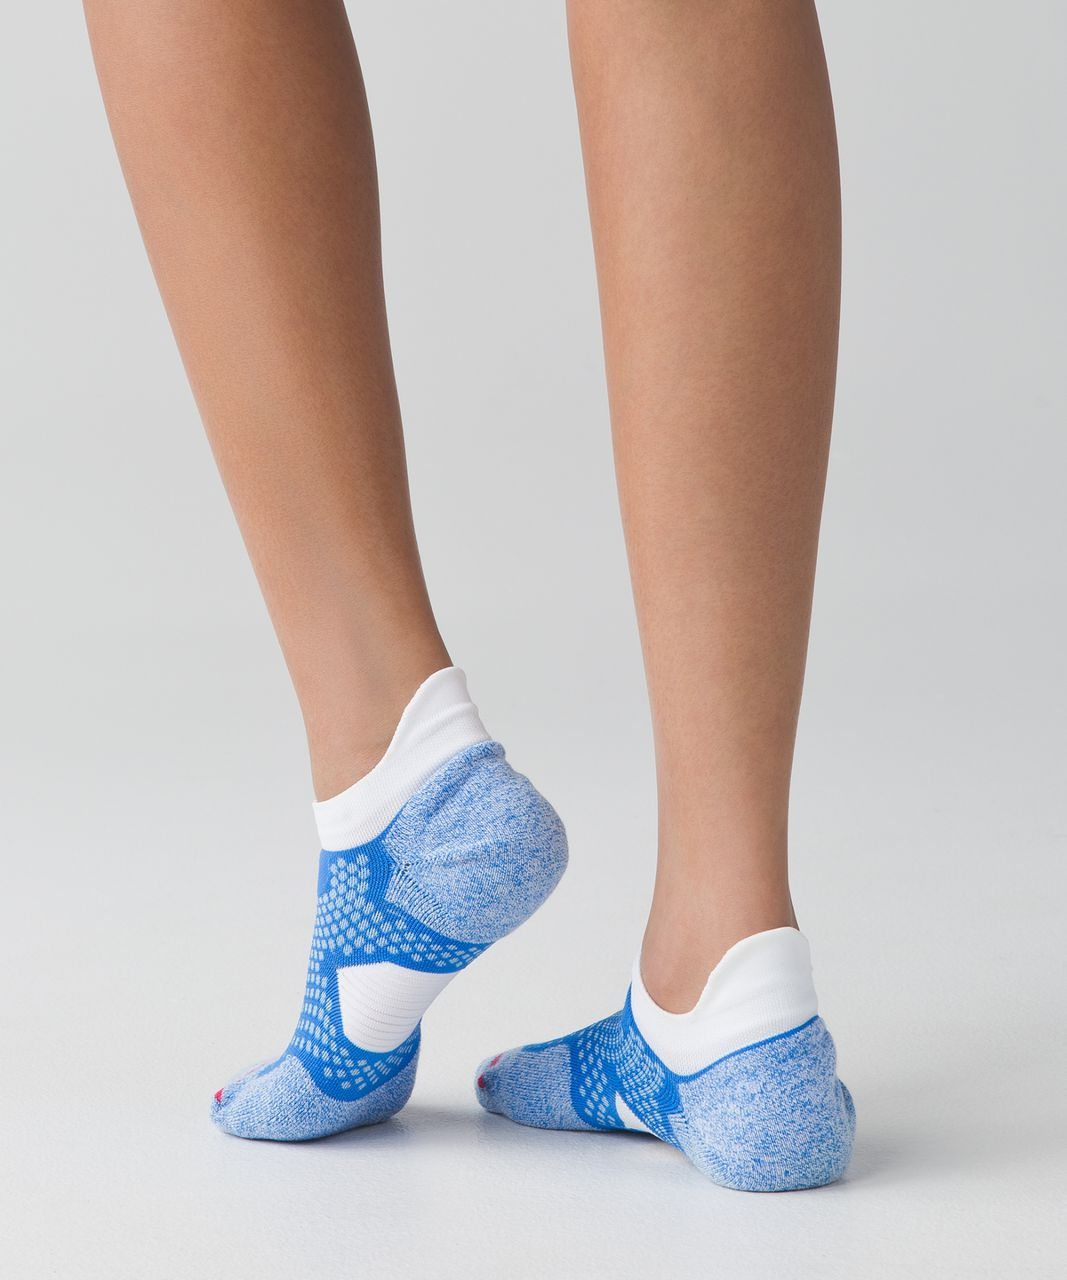 Lululemon High Speed Sock - Pipe Dream Blue / Caspian Blue / Boom Juice